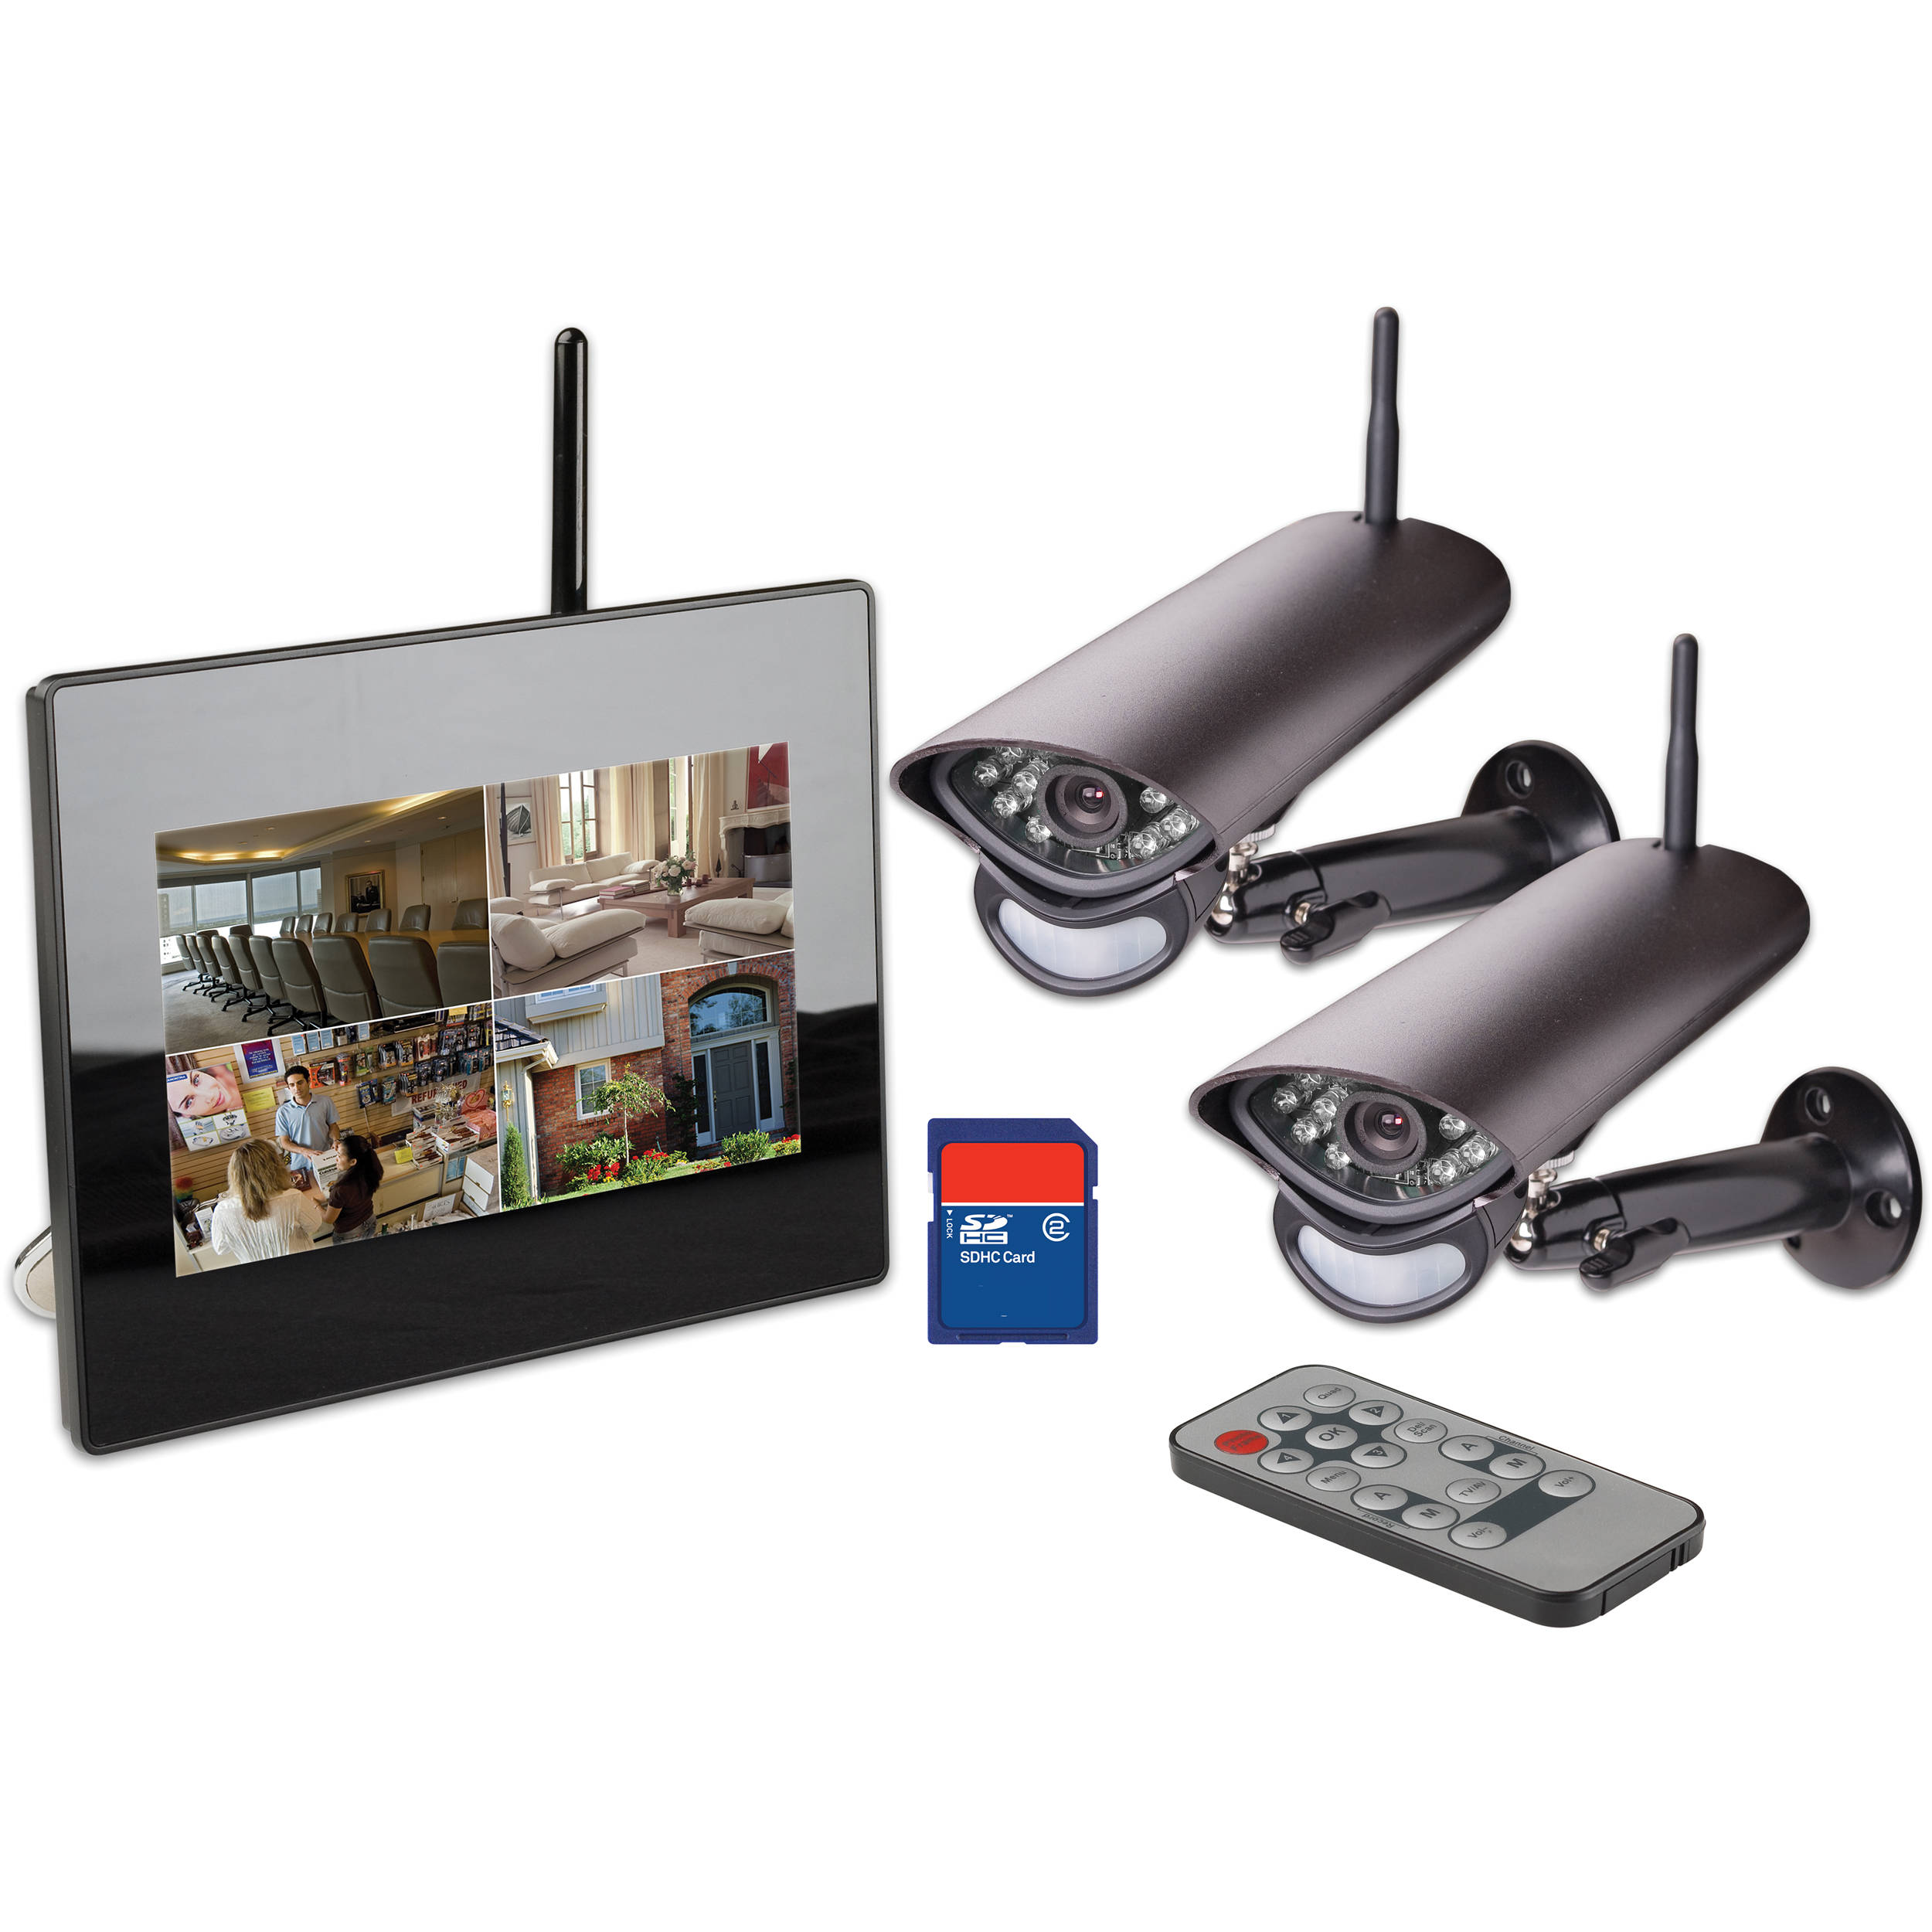 Lorex Digital Wireless LCD Surveillance System LW2702 B&H ...